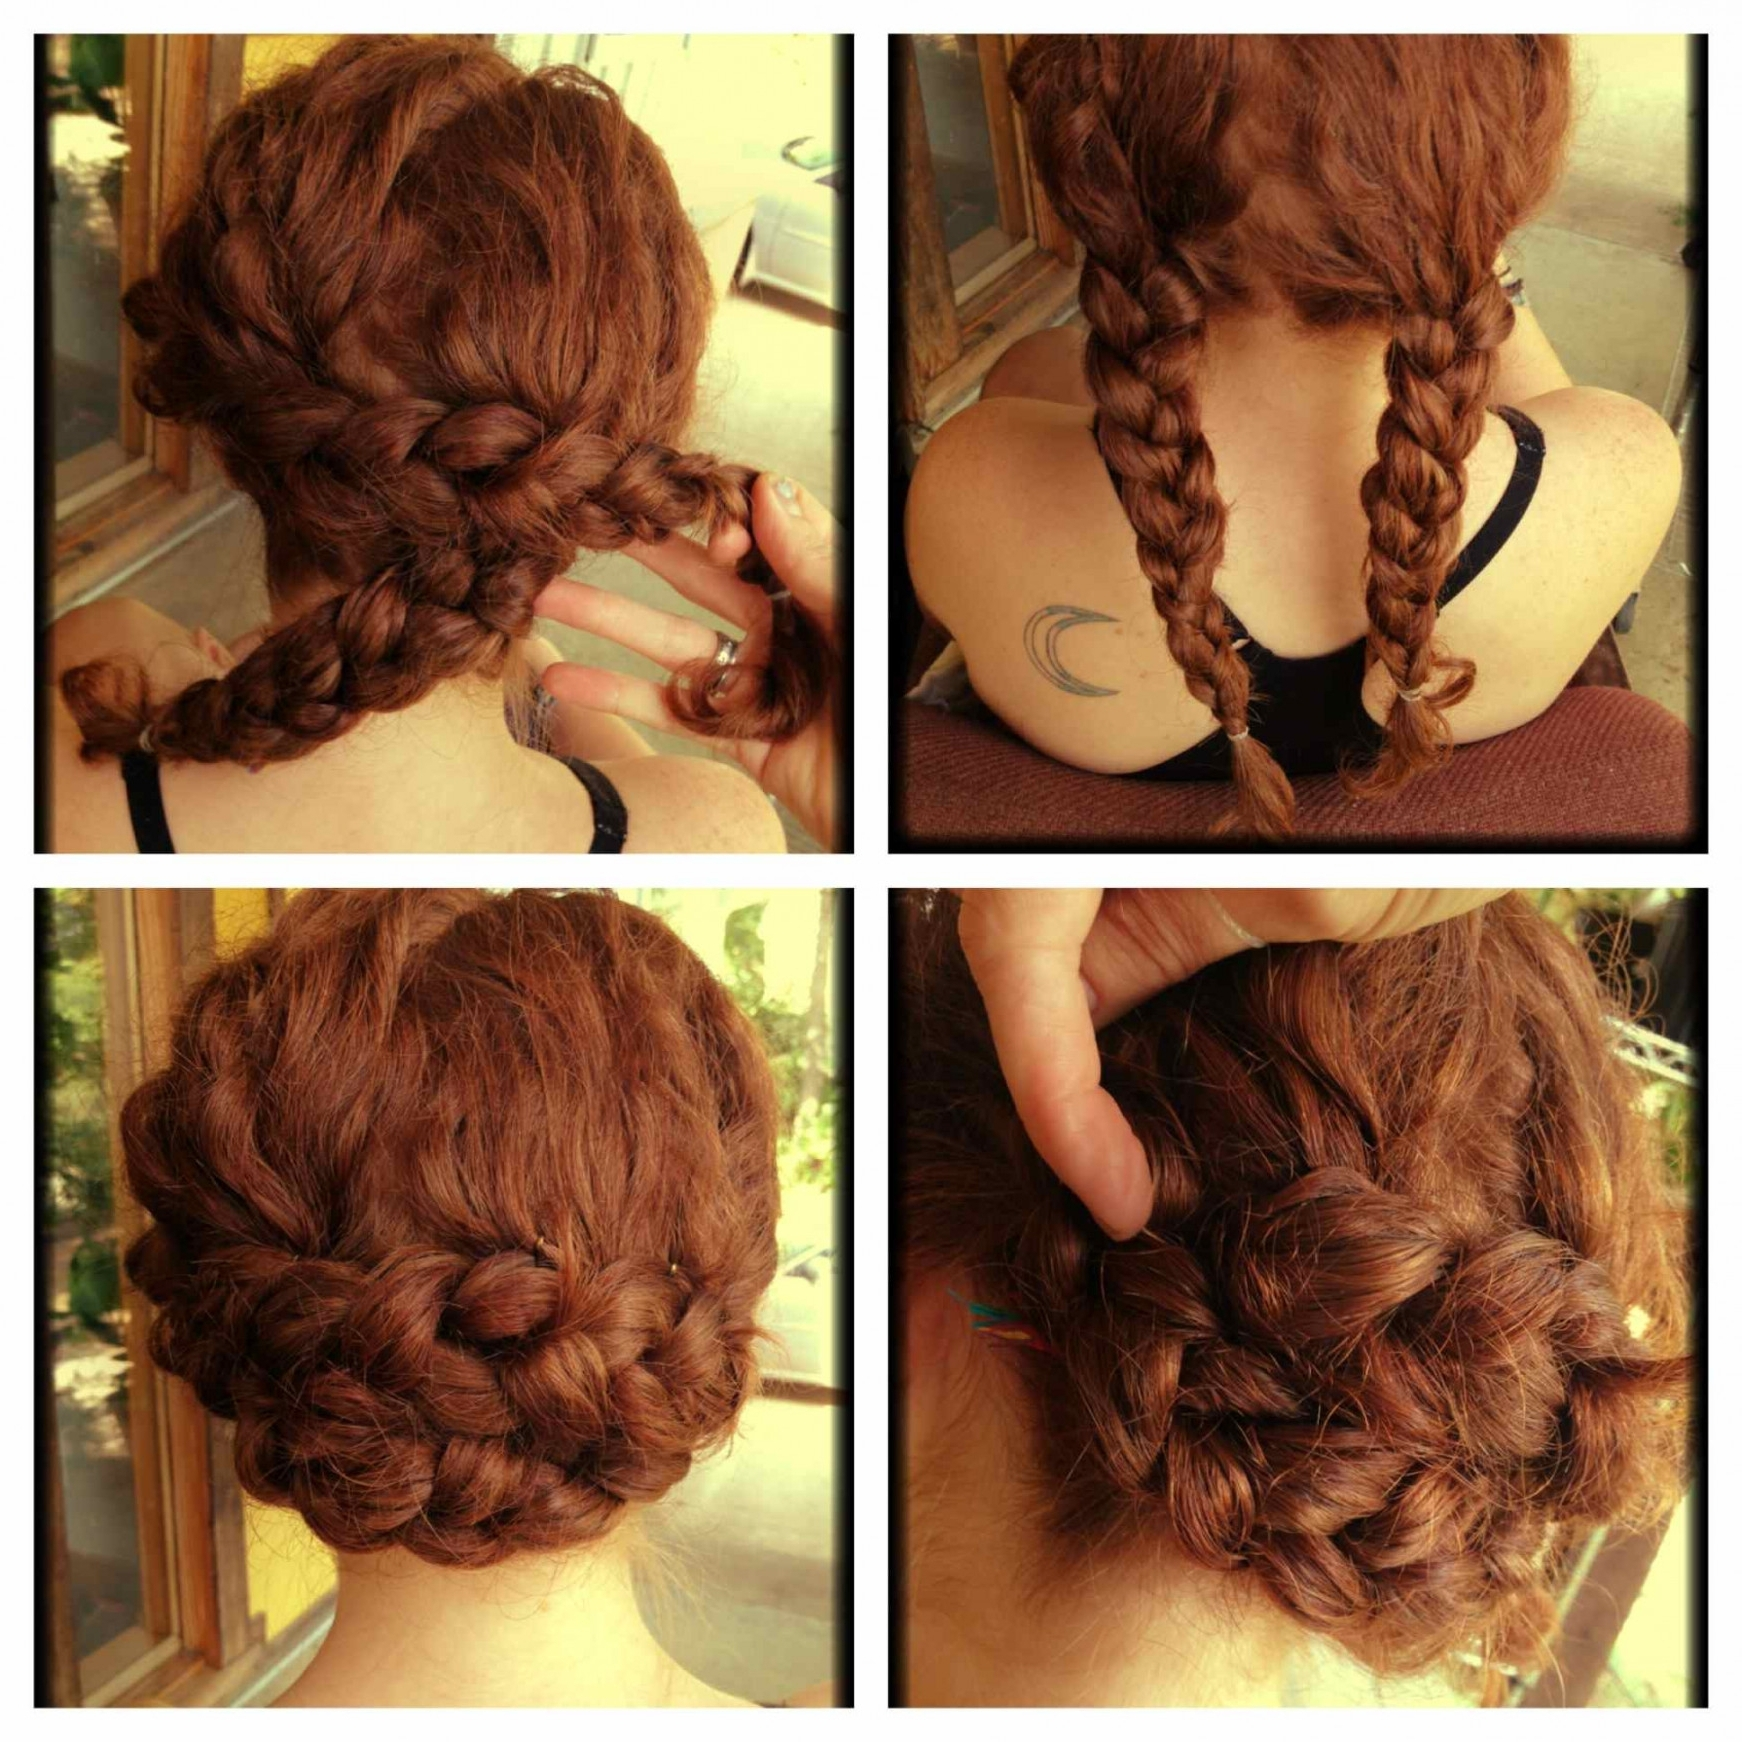 Hairstyles Updos Tumblr Updo For Prom Long Thick Impressive Hair Regarding Updo Hairstyles For Long Thick Hair (View 7 of 15)